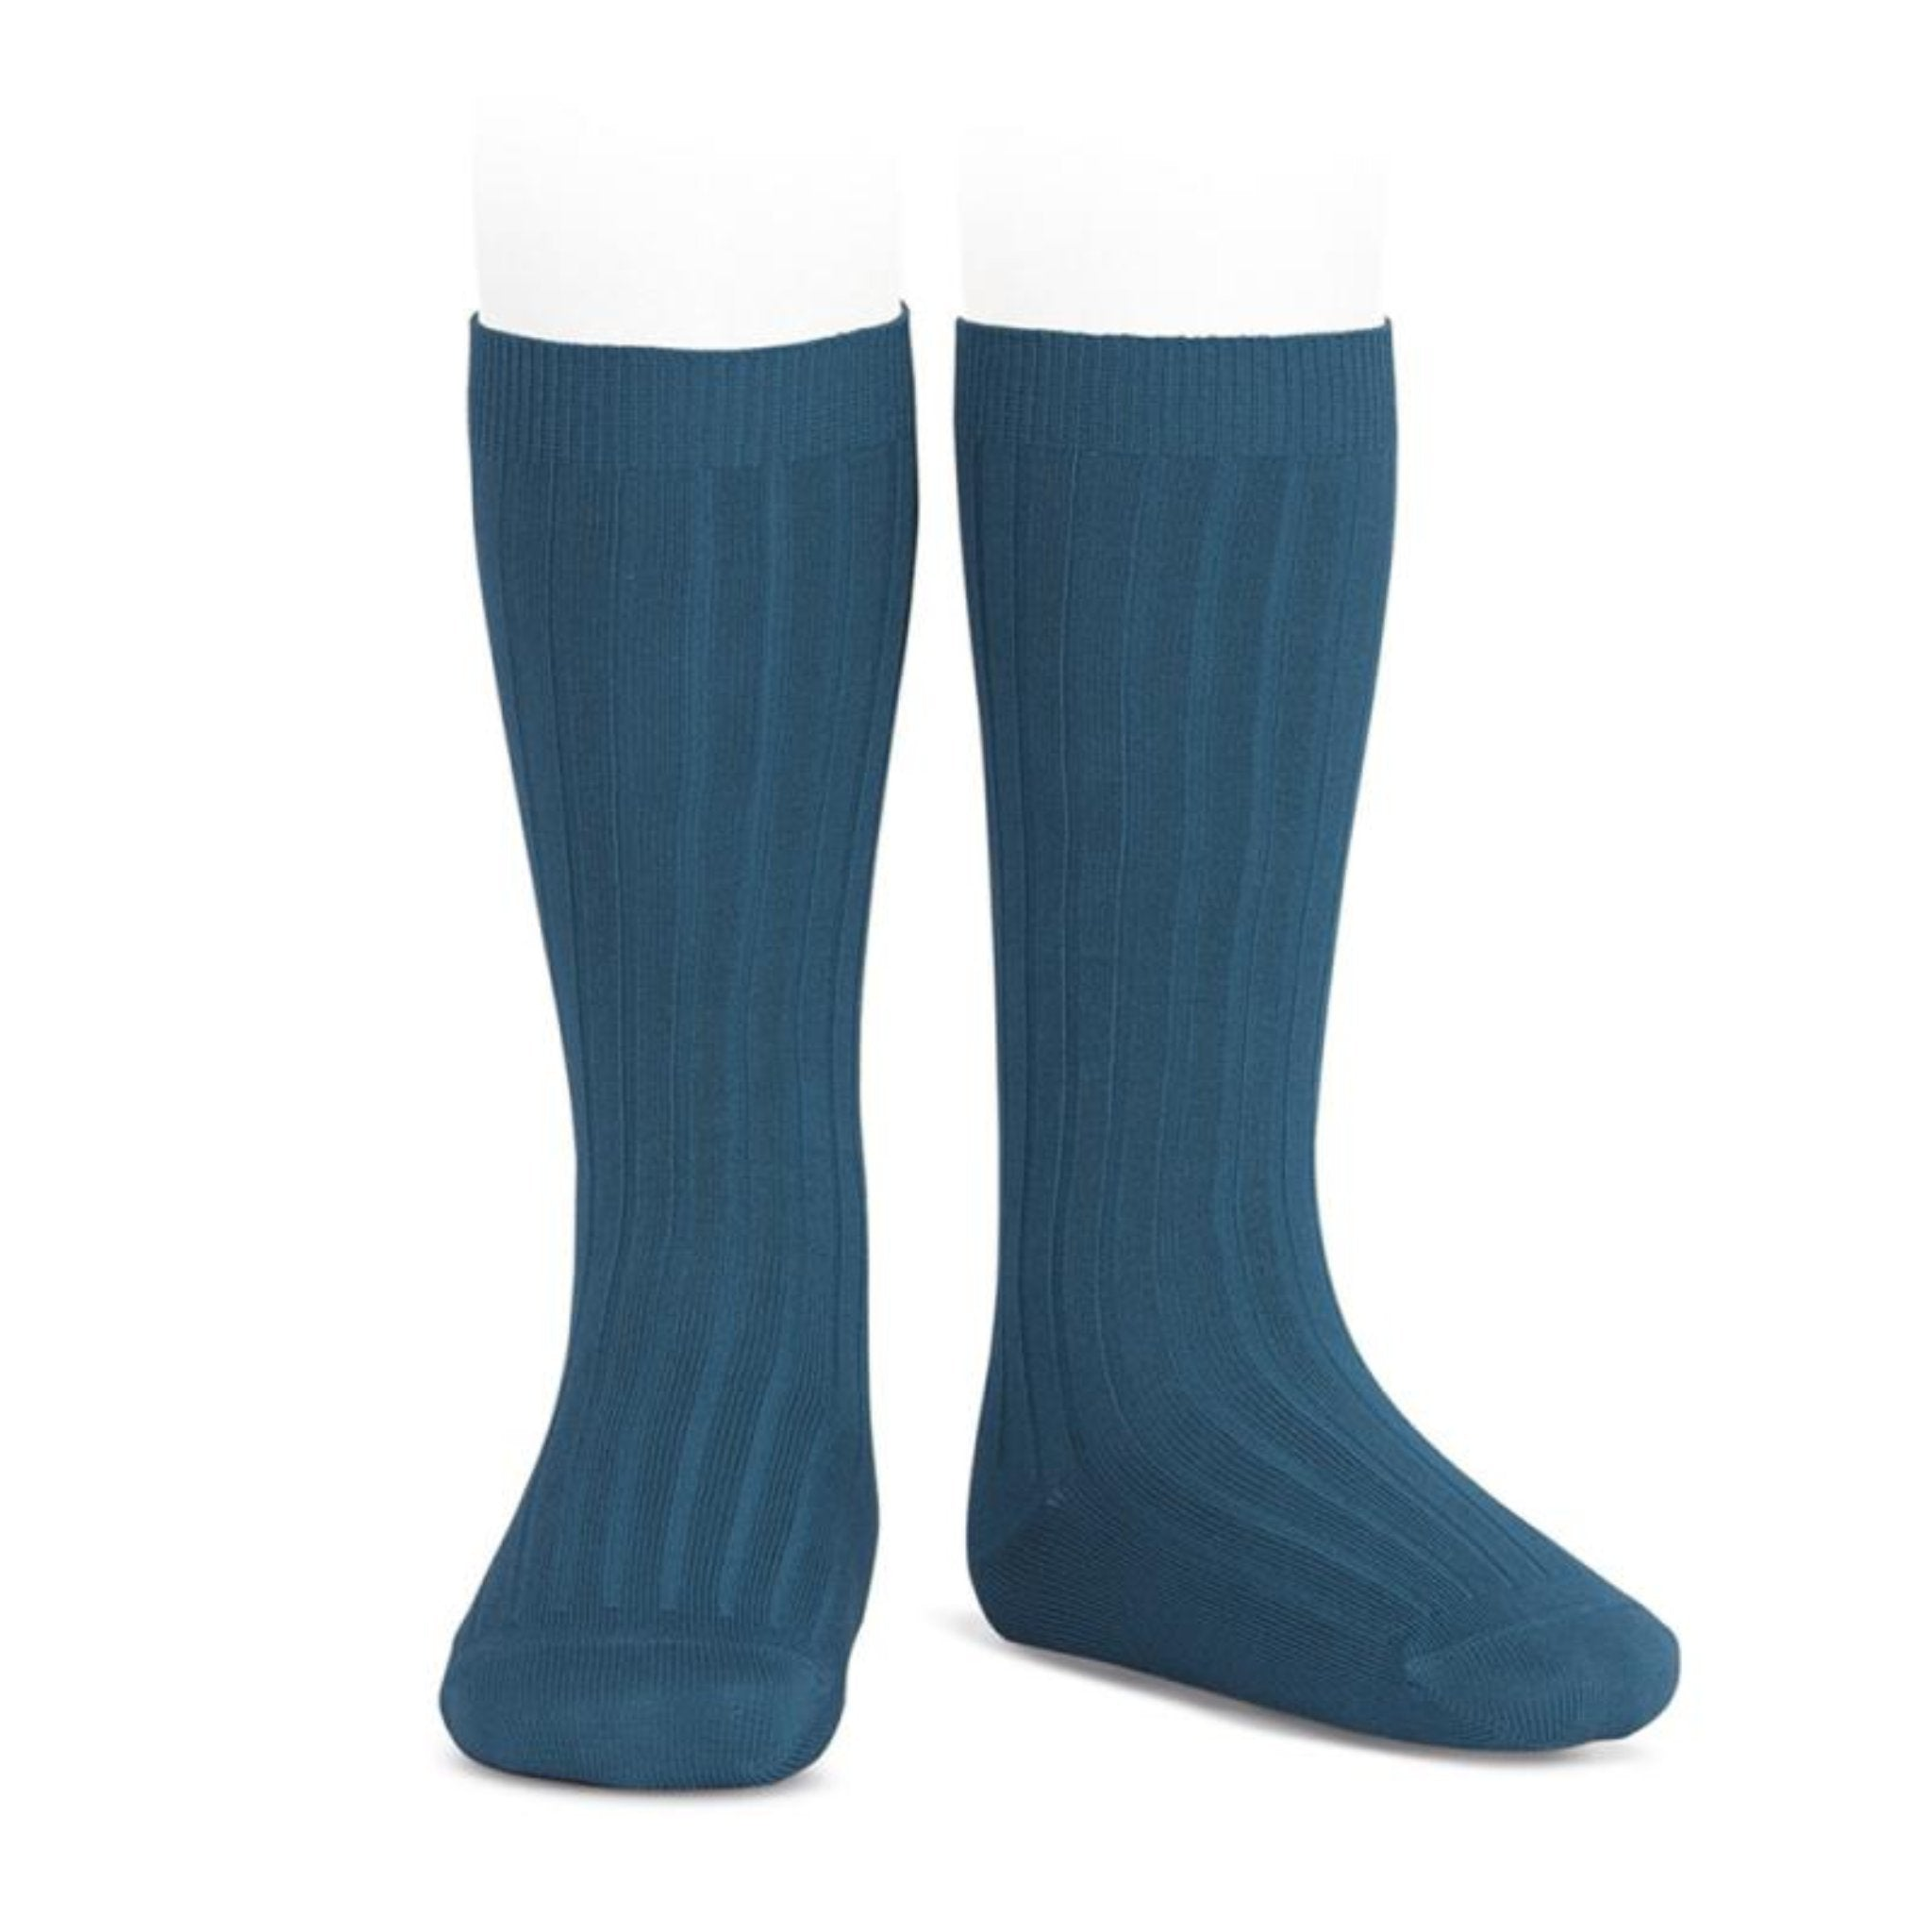 CONDOR | Wide Ribbed Cotton Knee High Socks | Oceano (#453)